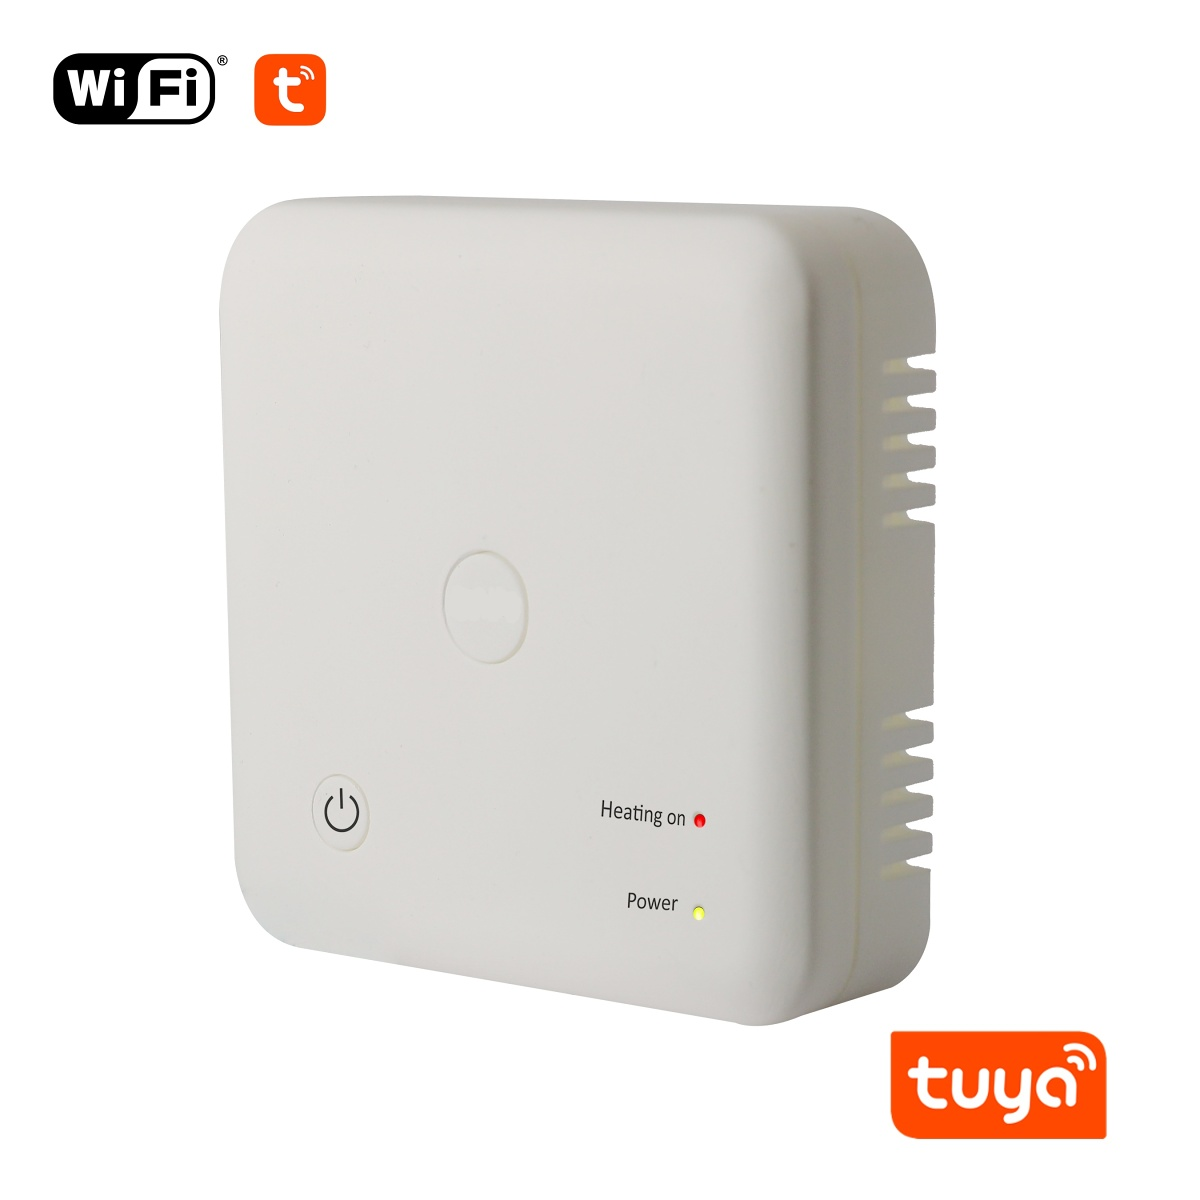 WiFi Termostat 10A Dry Contact R06 - Tuya